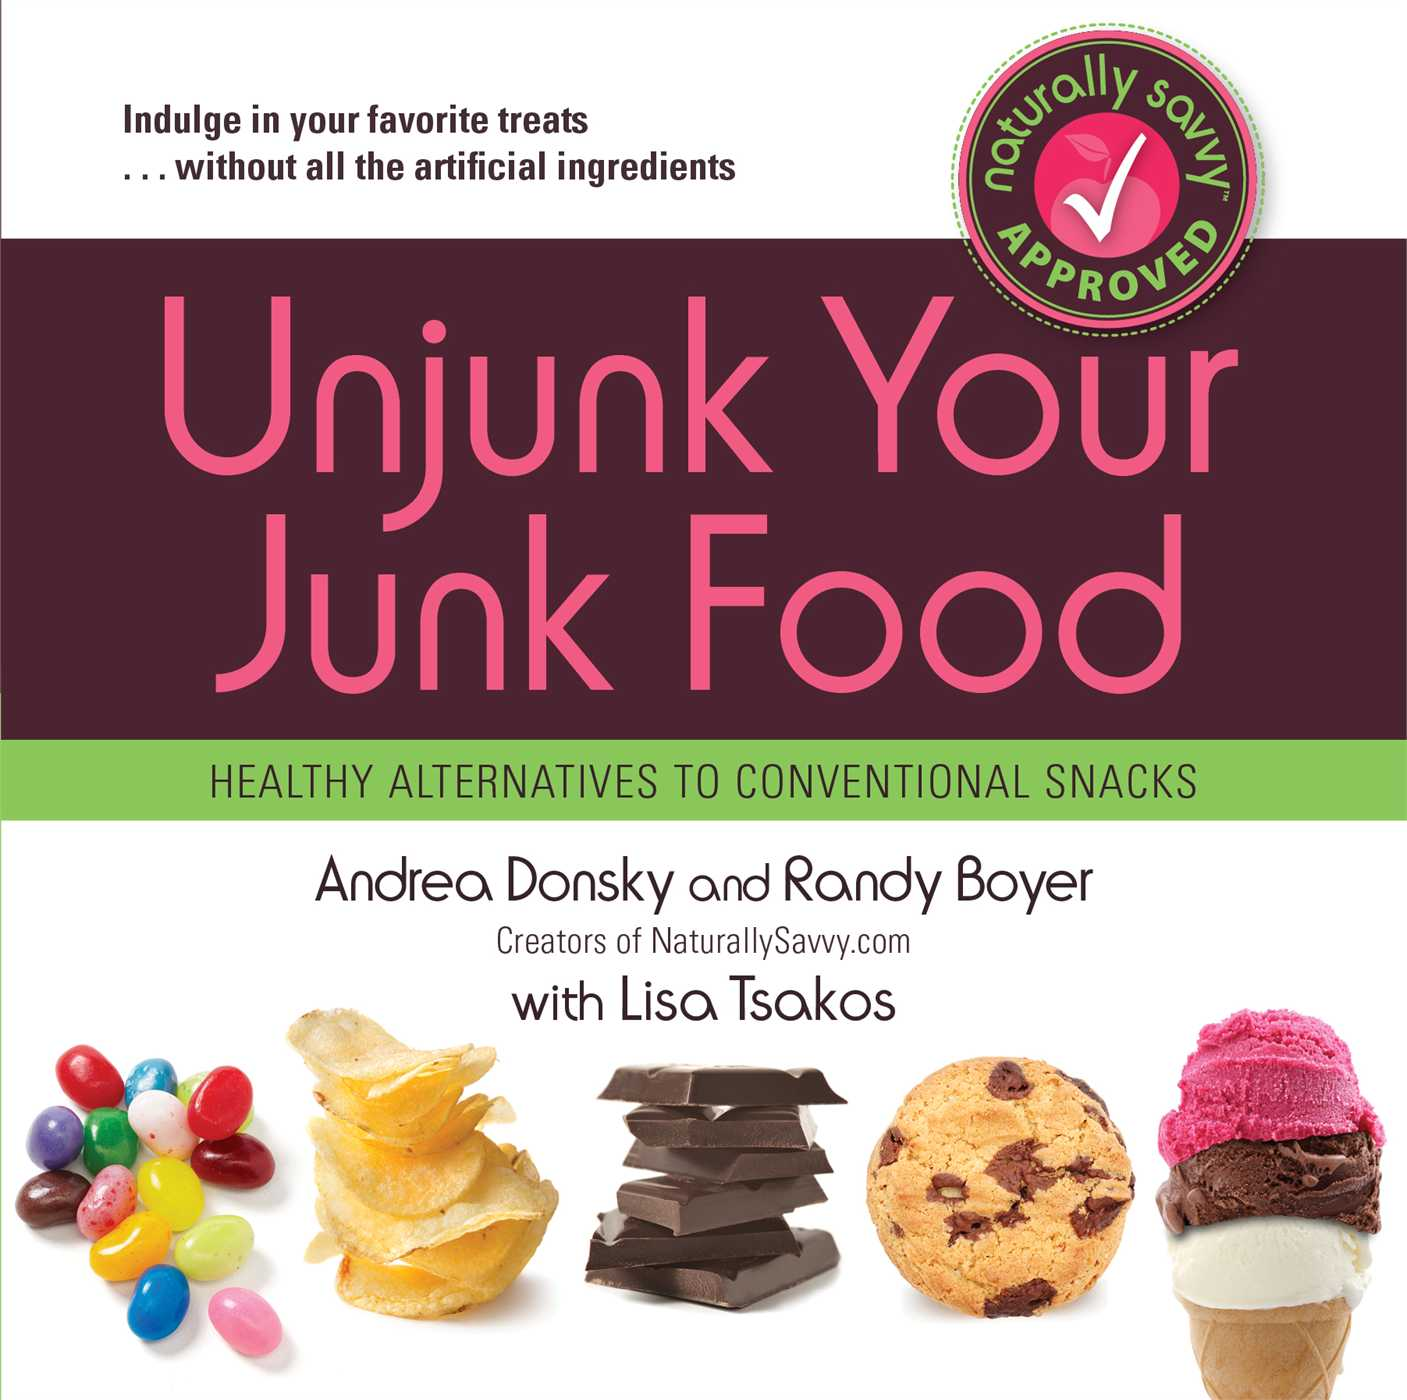 Unjunk your junk food ebook by andrea donsky randy boyer lisa cvr9781451616606 9781451616606 hr forumfinder Gallery